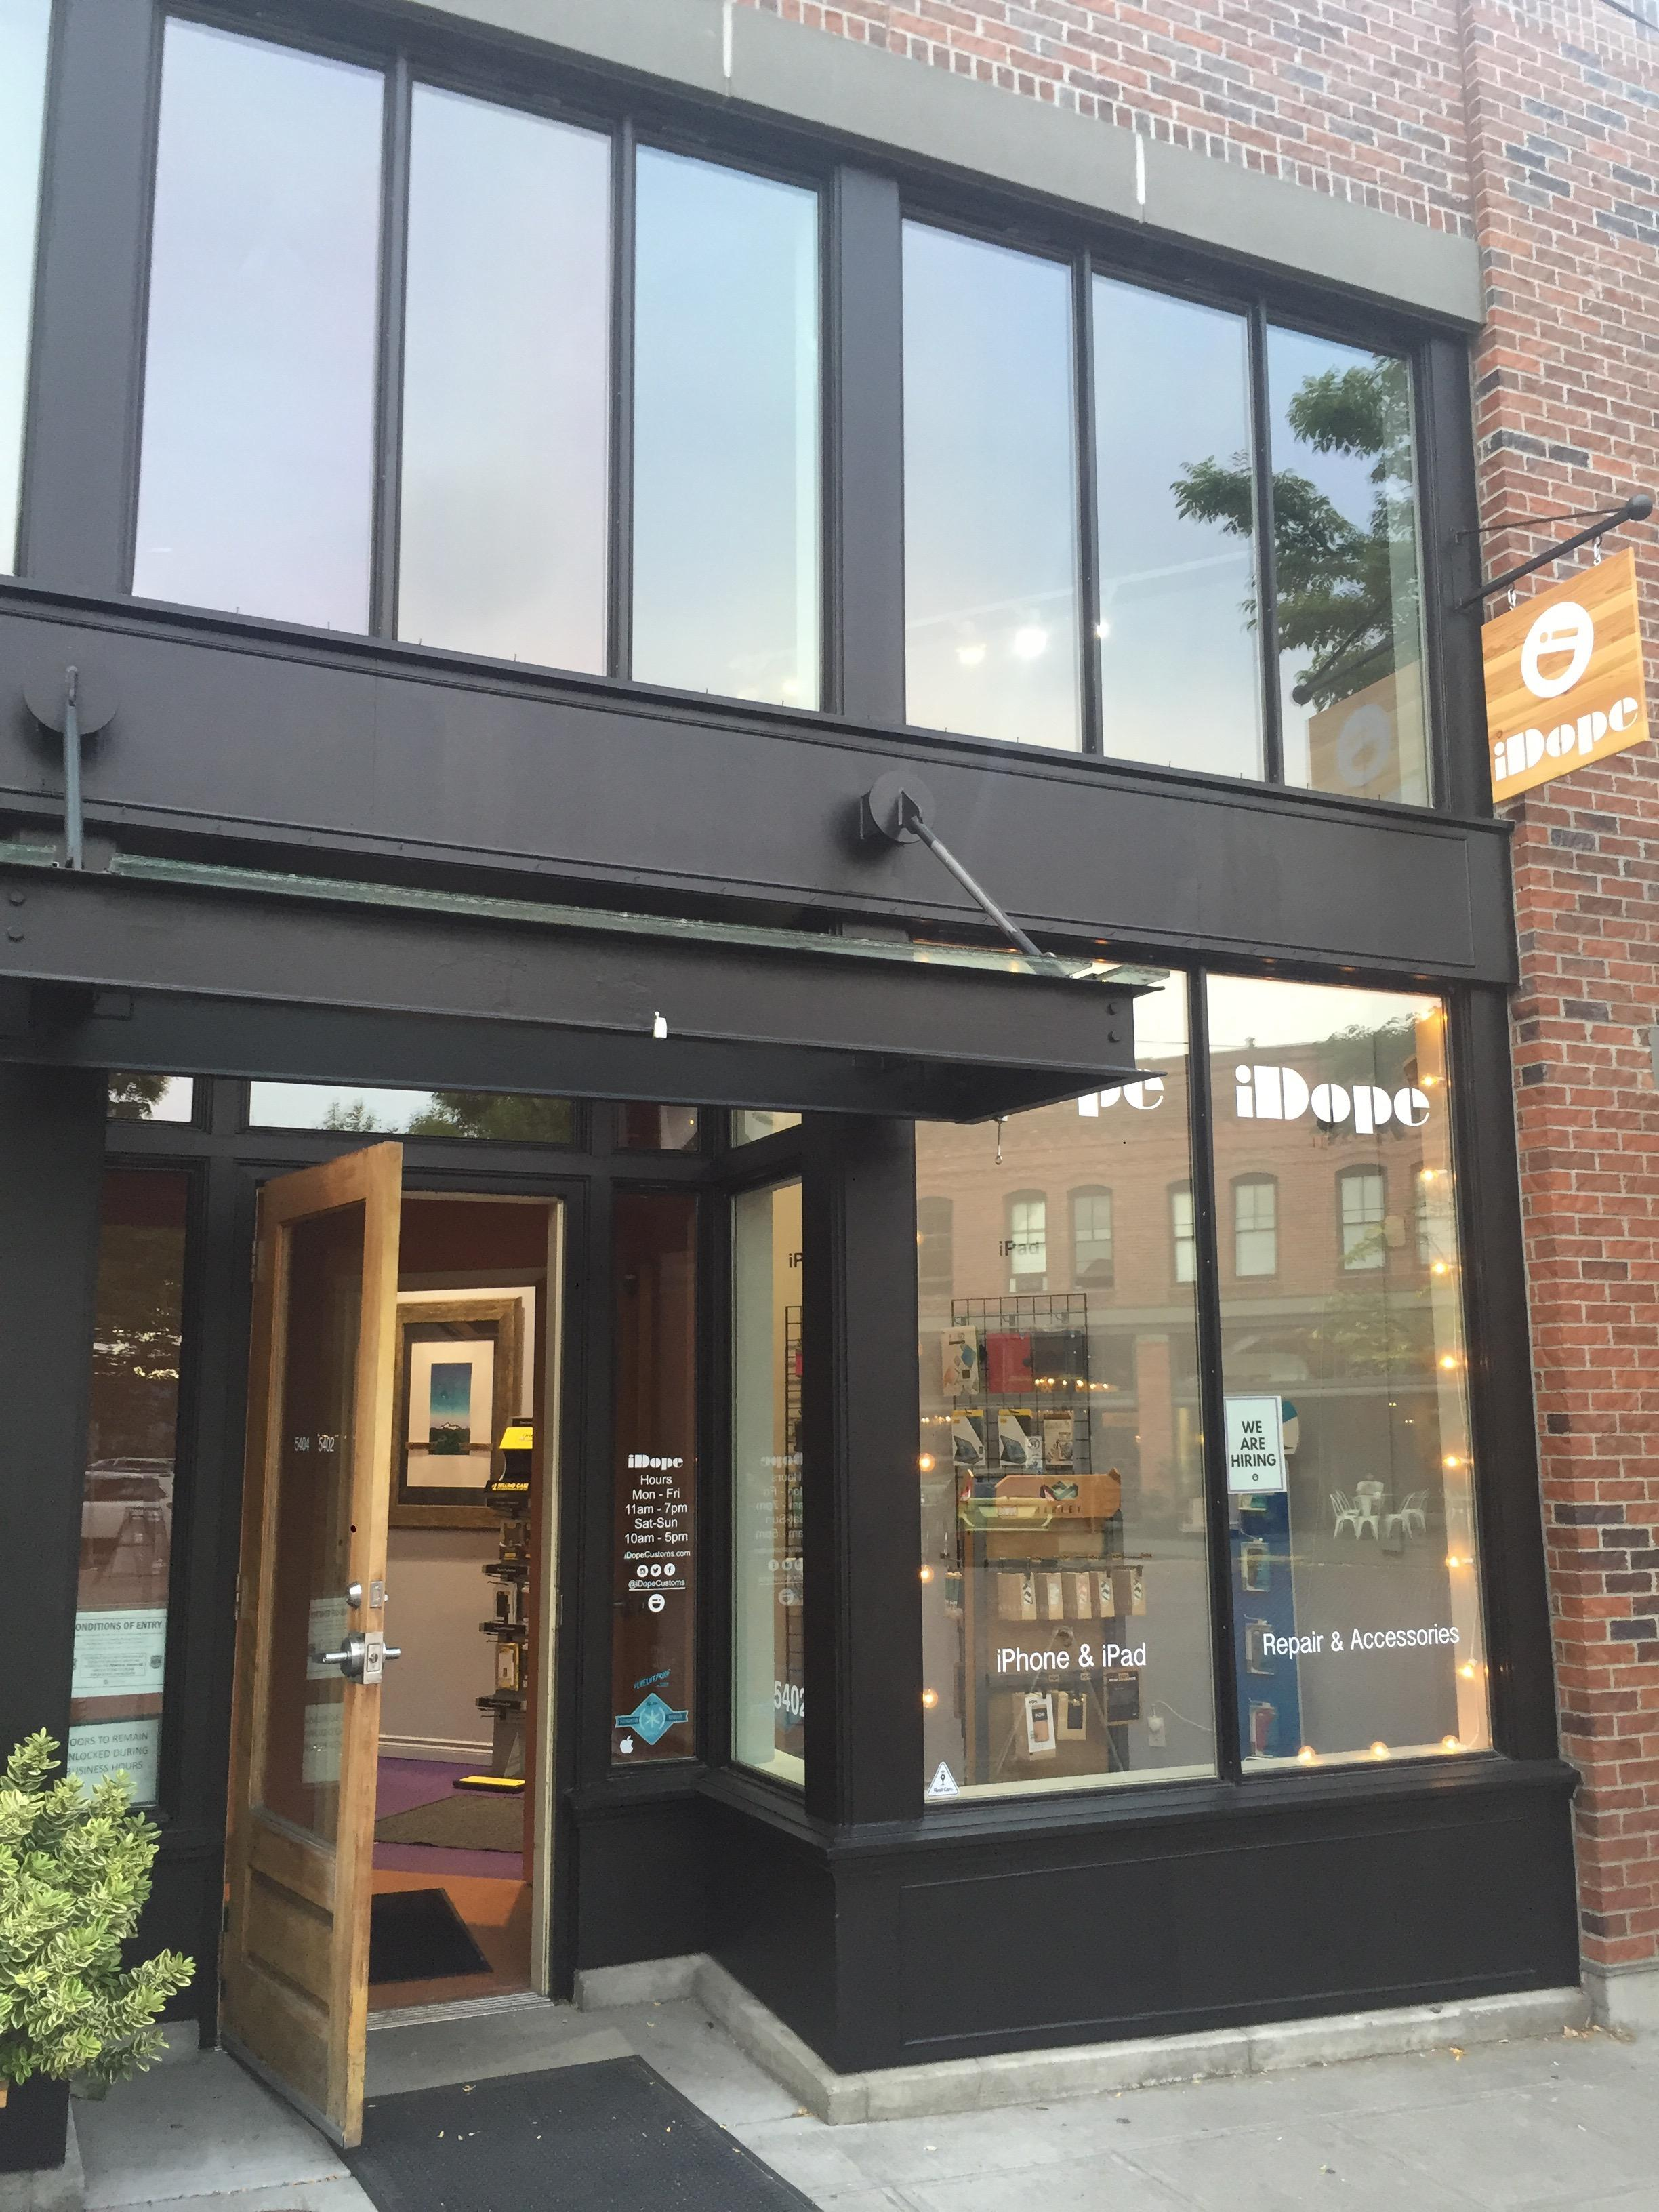 iDope Customs Ballard - Seattle iPhone, iPad, Macbook Computer Repair and Accessories image 7